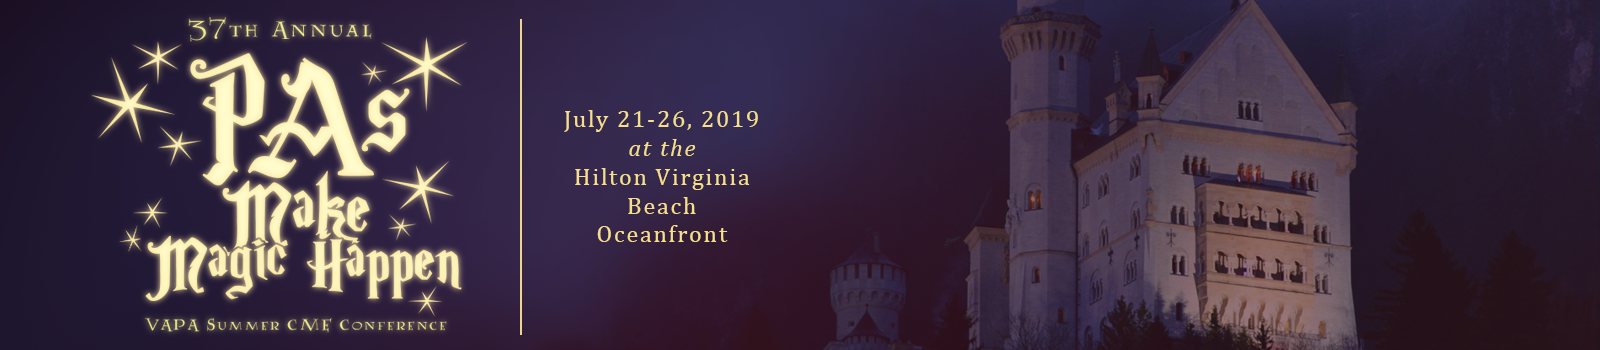 VAPA 2019 Summer CME Conference